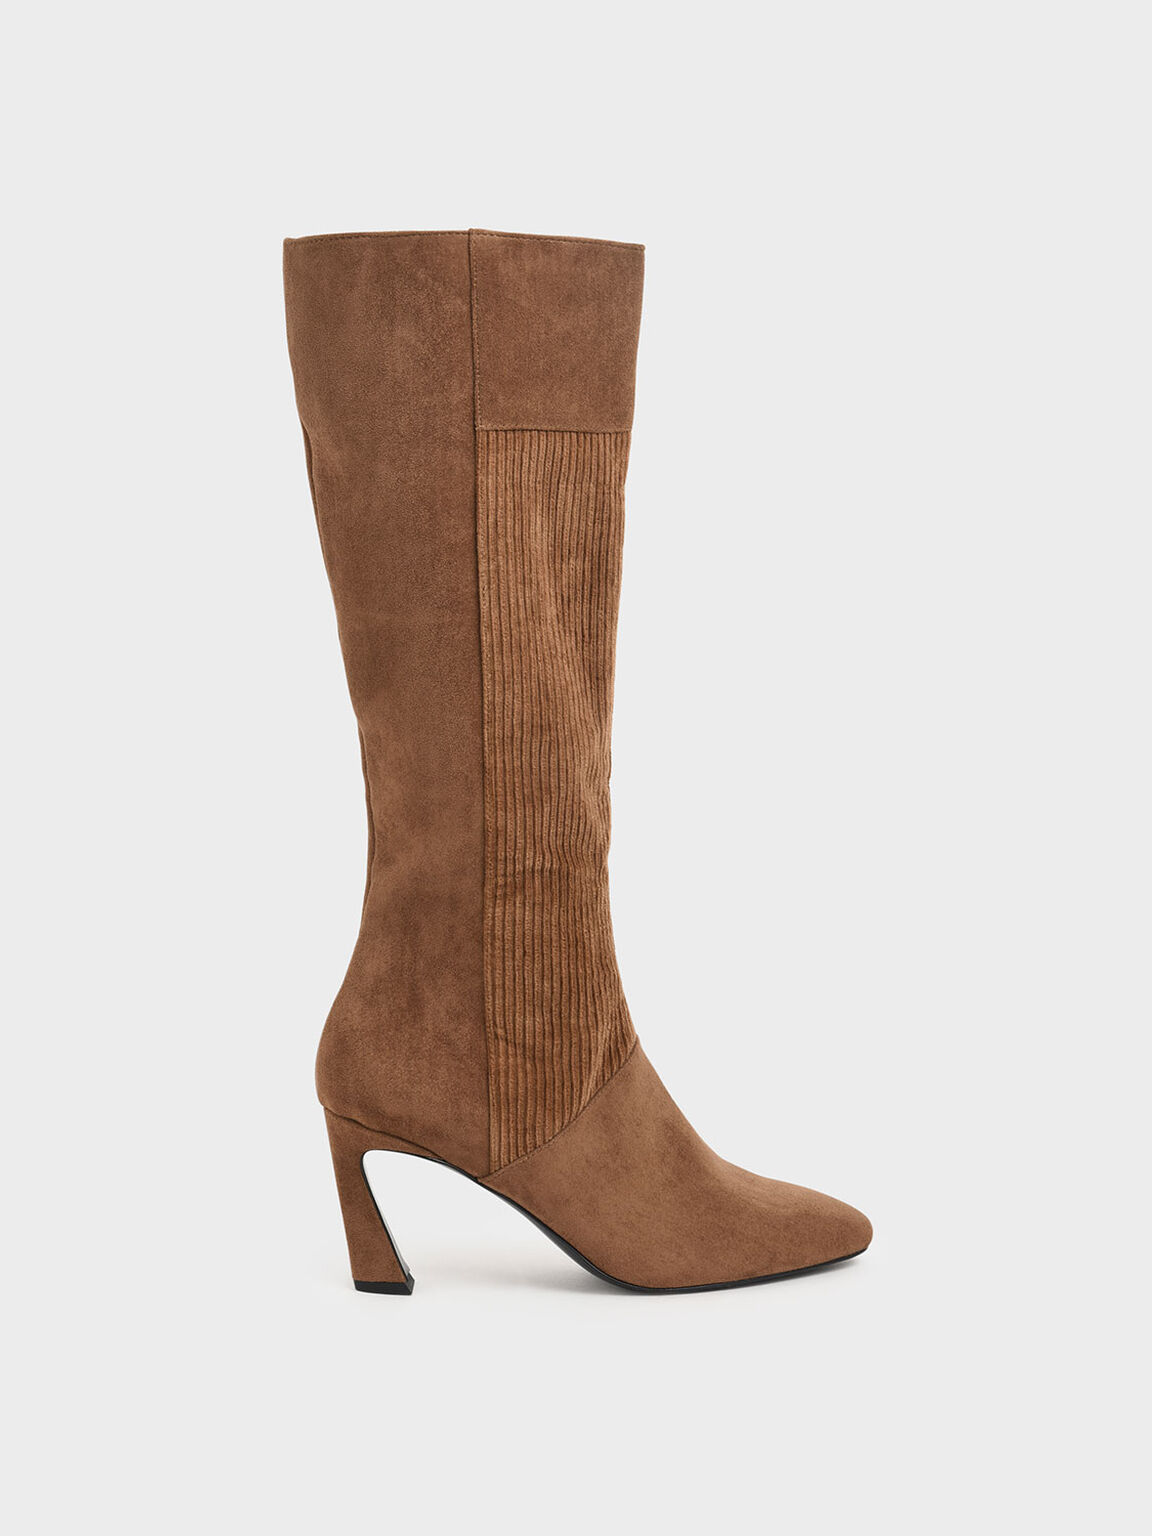 Corduroy Sculptural Heel Knee High Boots, Mustard, hi-res